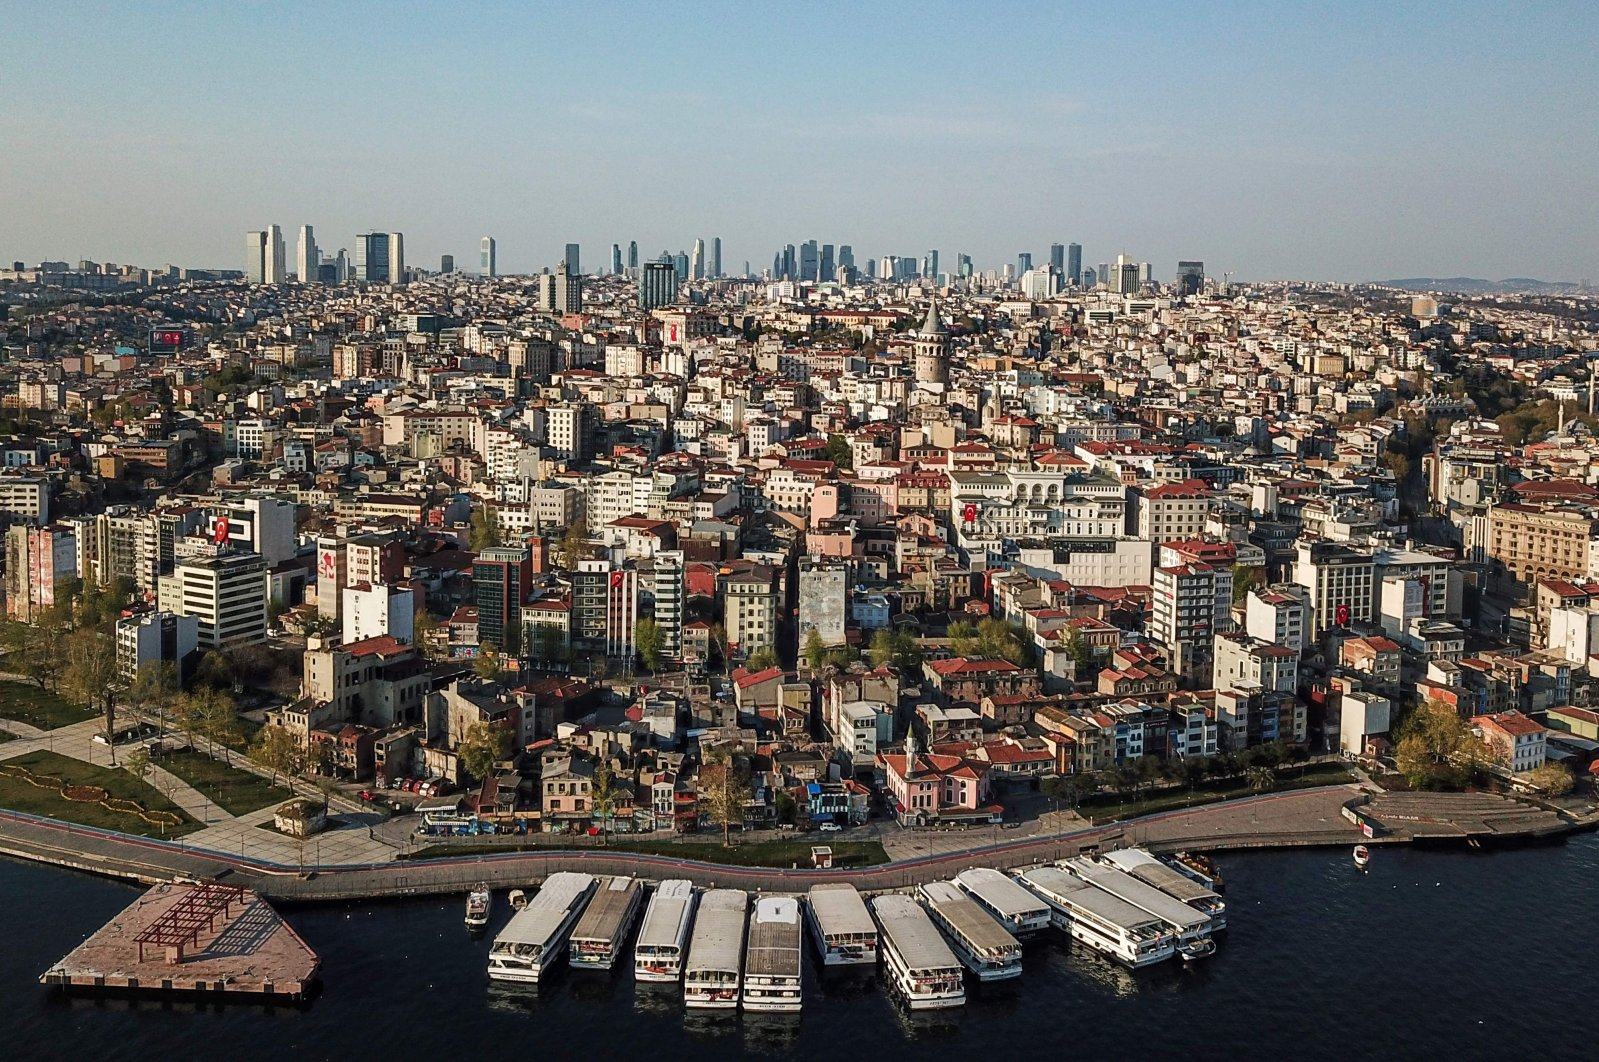 An aerial view of Galata Tower (C) and the Beyoğlu district of Istanbul, Turkey, during the coronavirus pandemic, April 26, 2020. (AFP Photo)